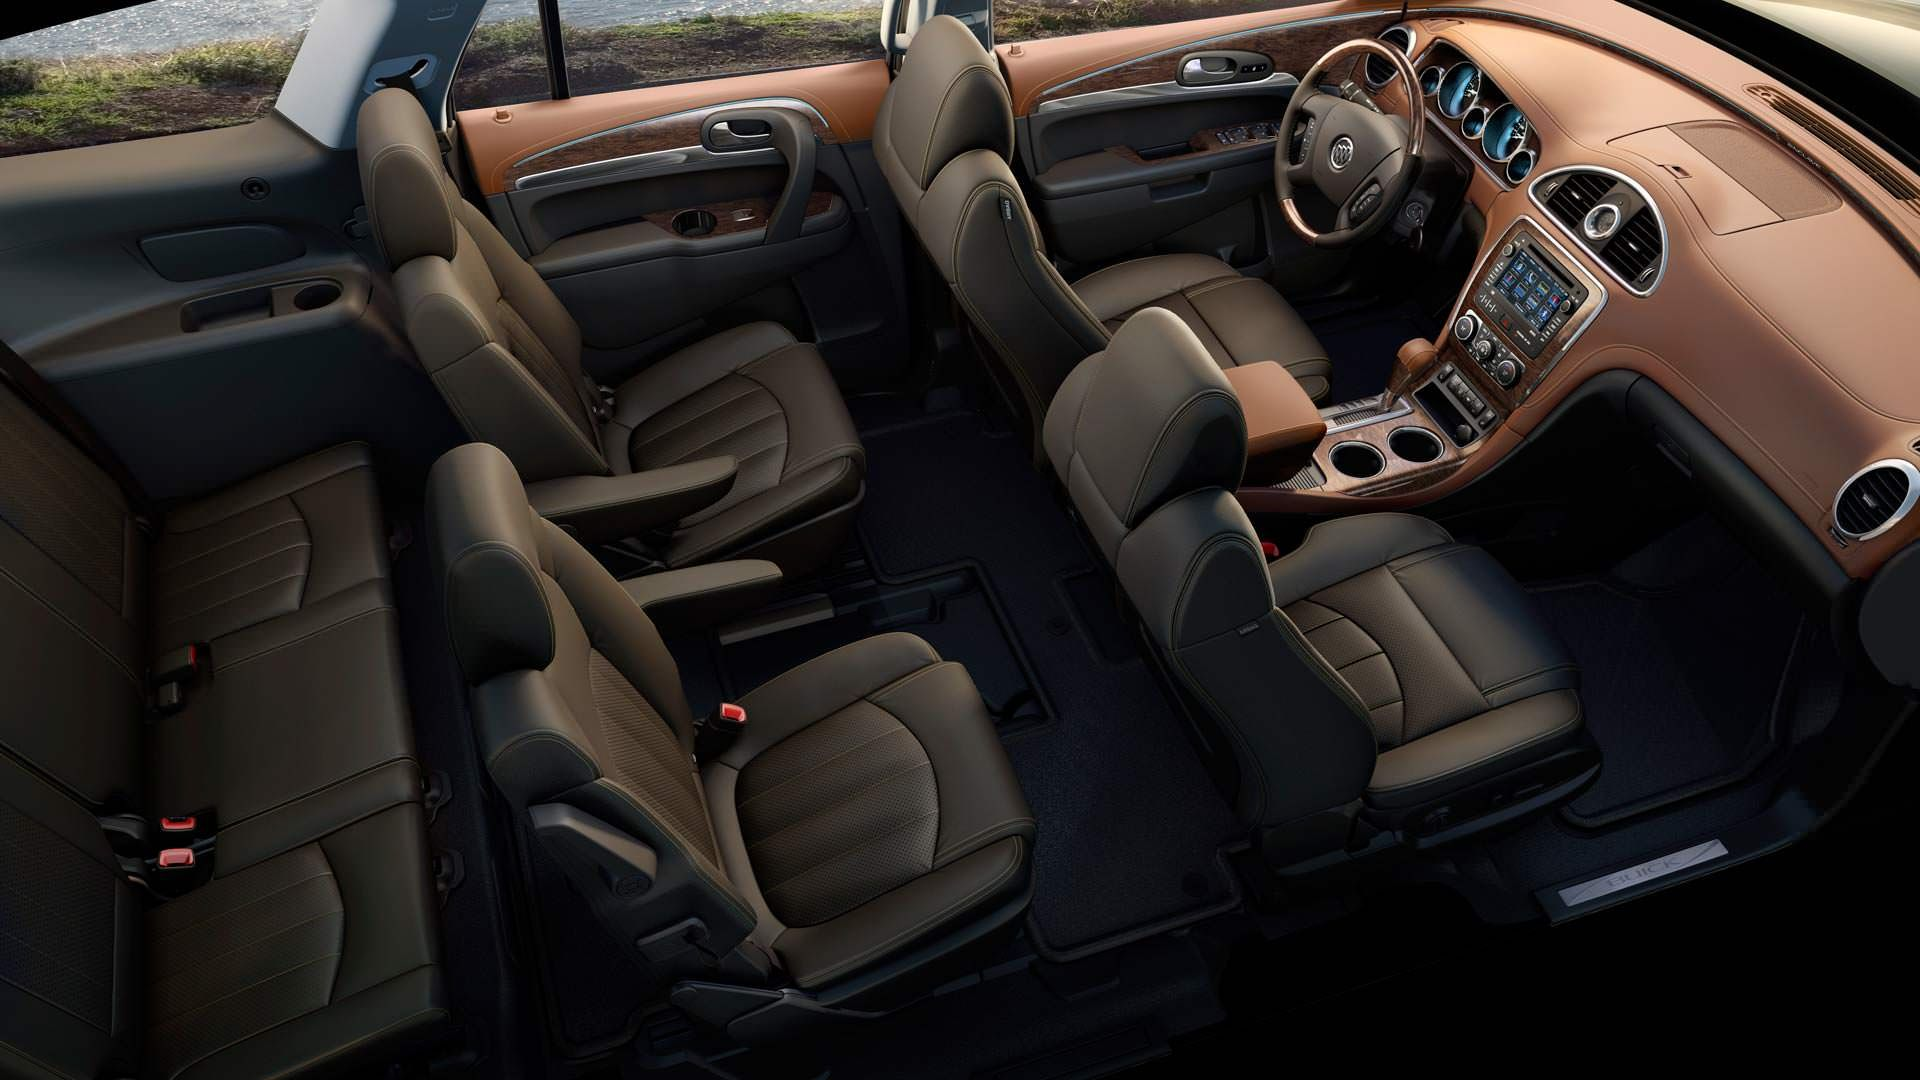 2014 Buick Enclave Luxury Crossover SUV | Interior Photos ...